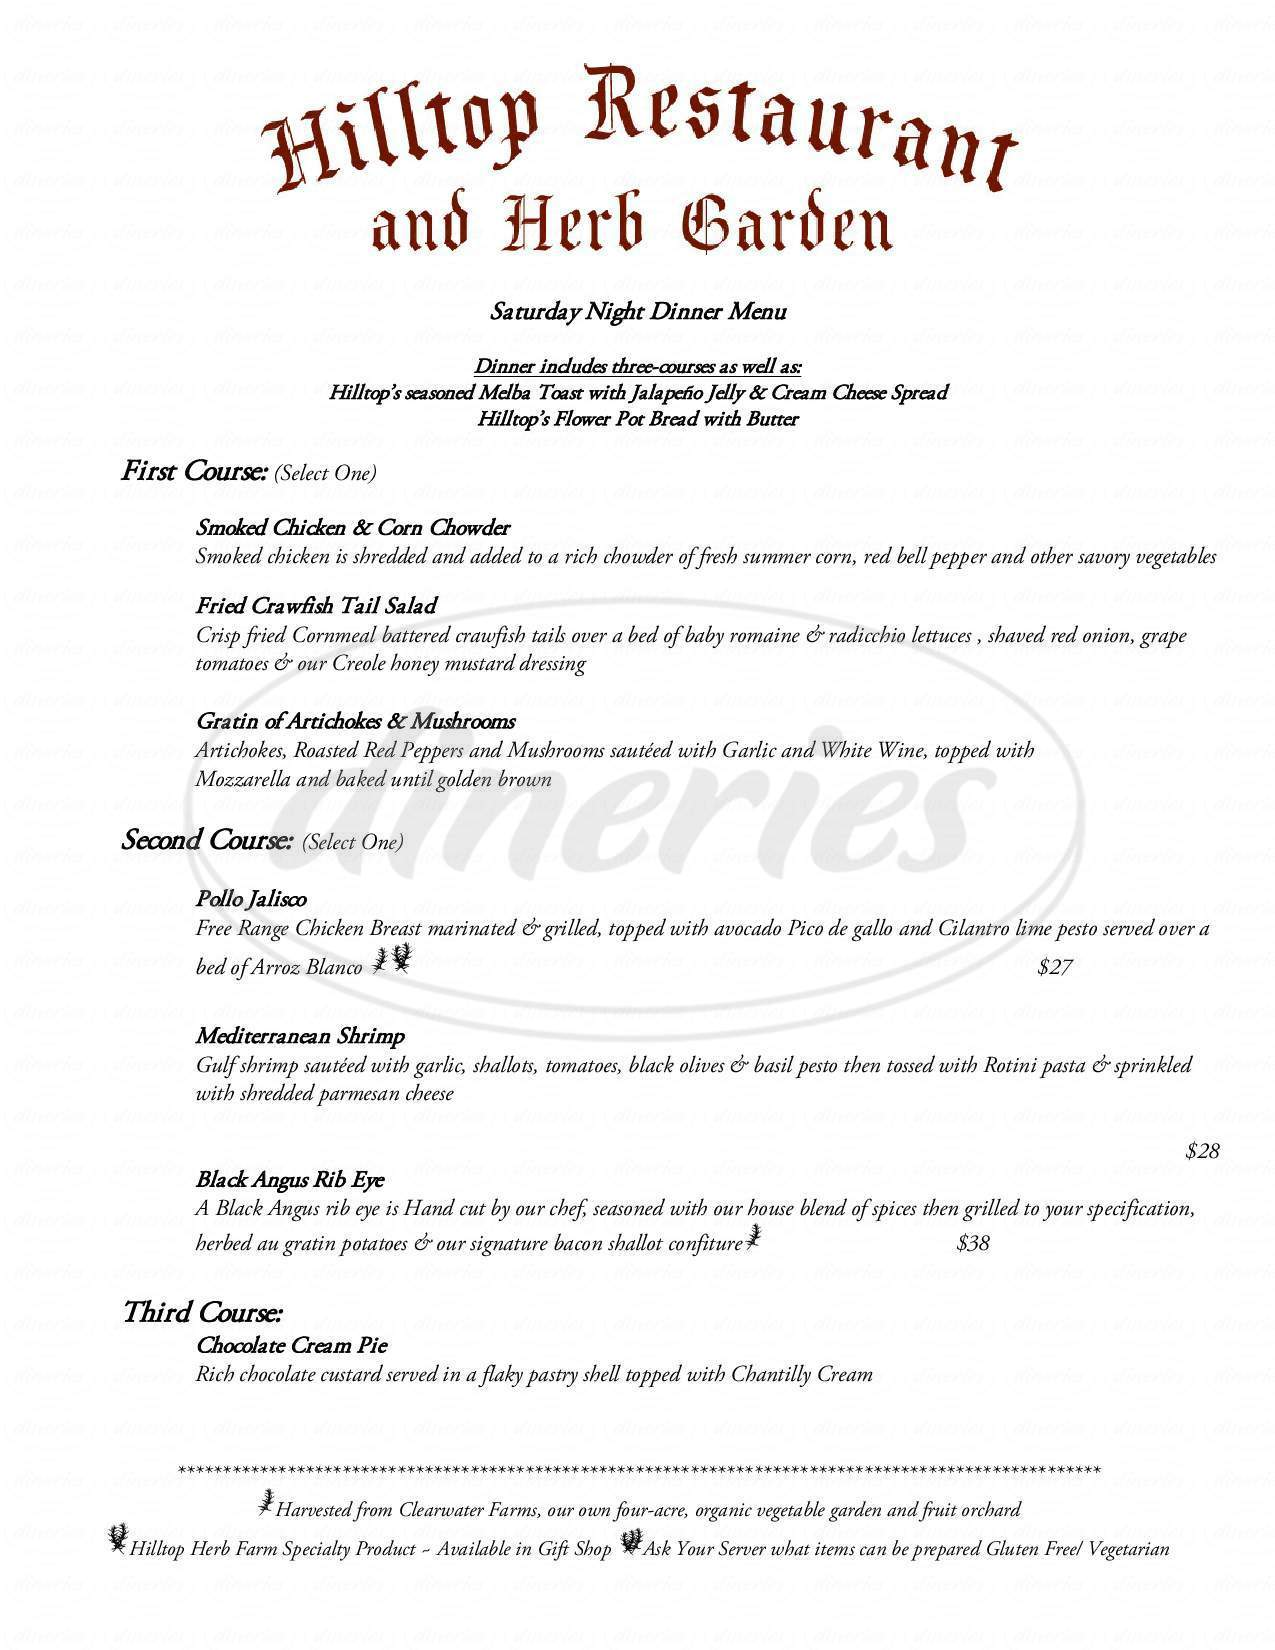 menu for Hilltop Restaurant and Herb Garden